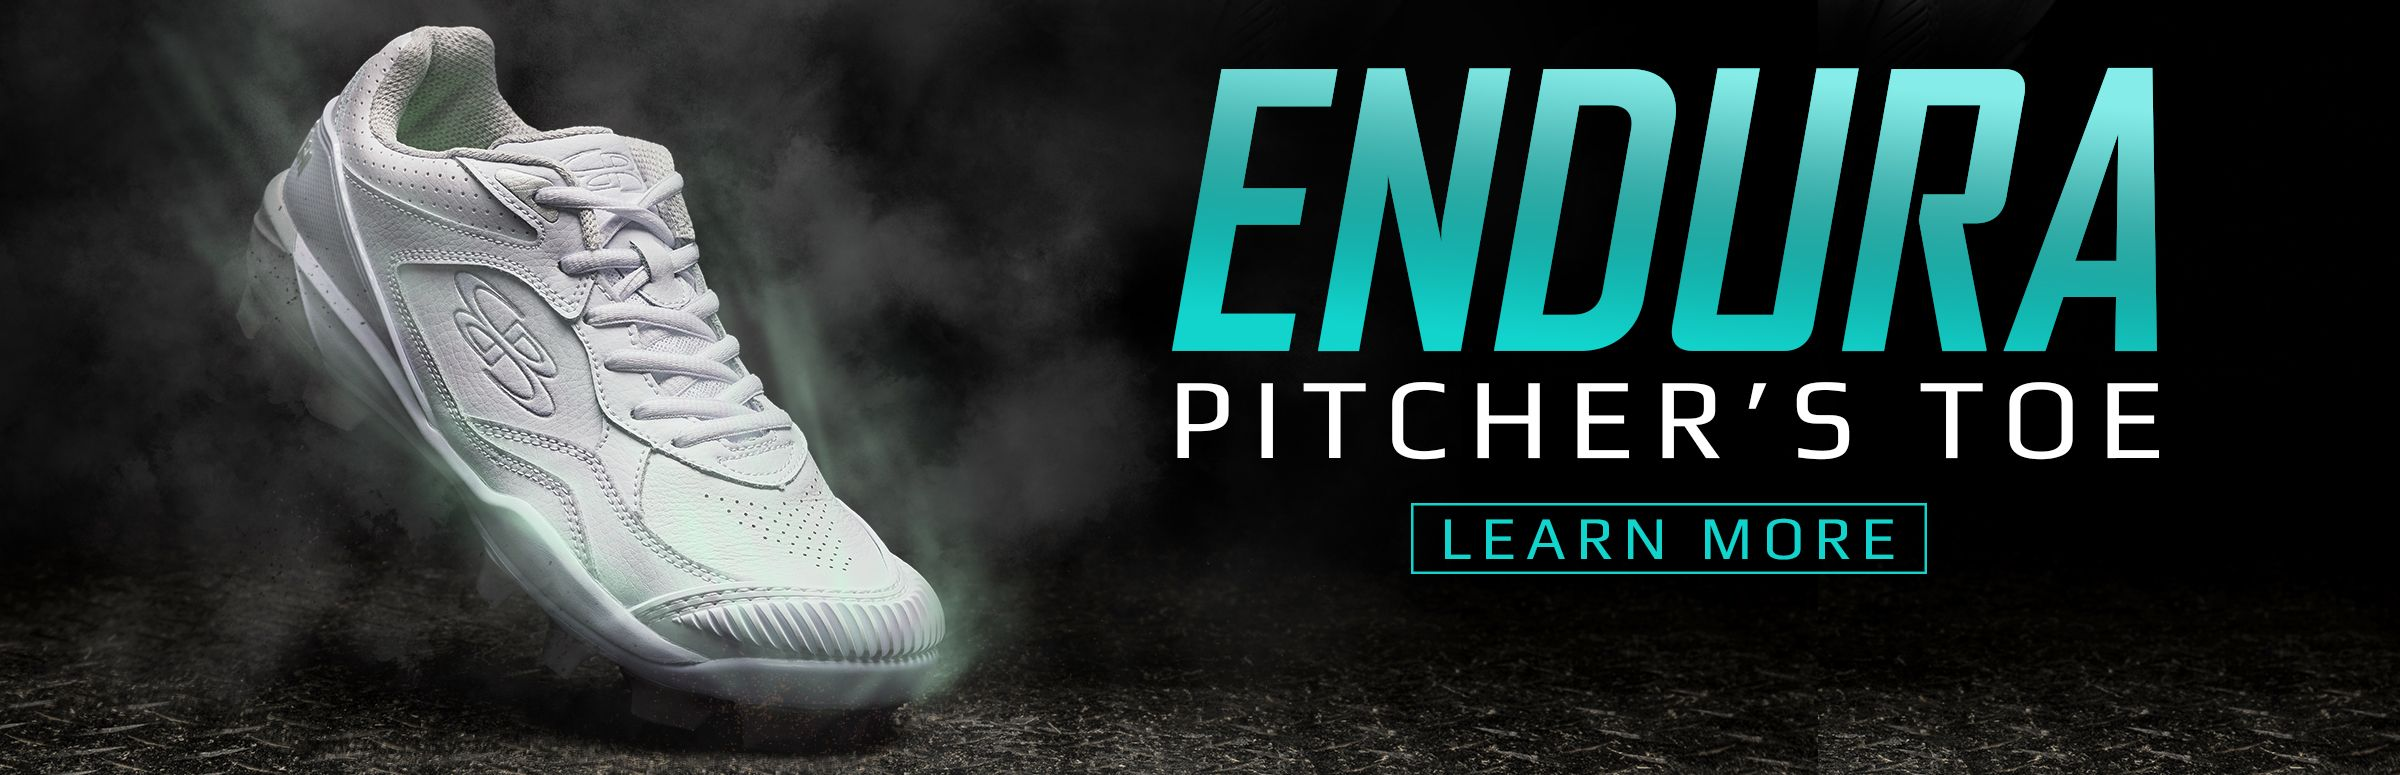 Boombah Endura Pitcher's Toe Fastpitch Cleats